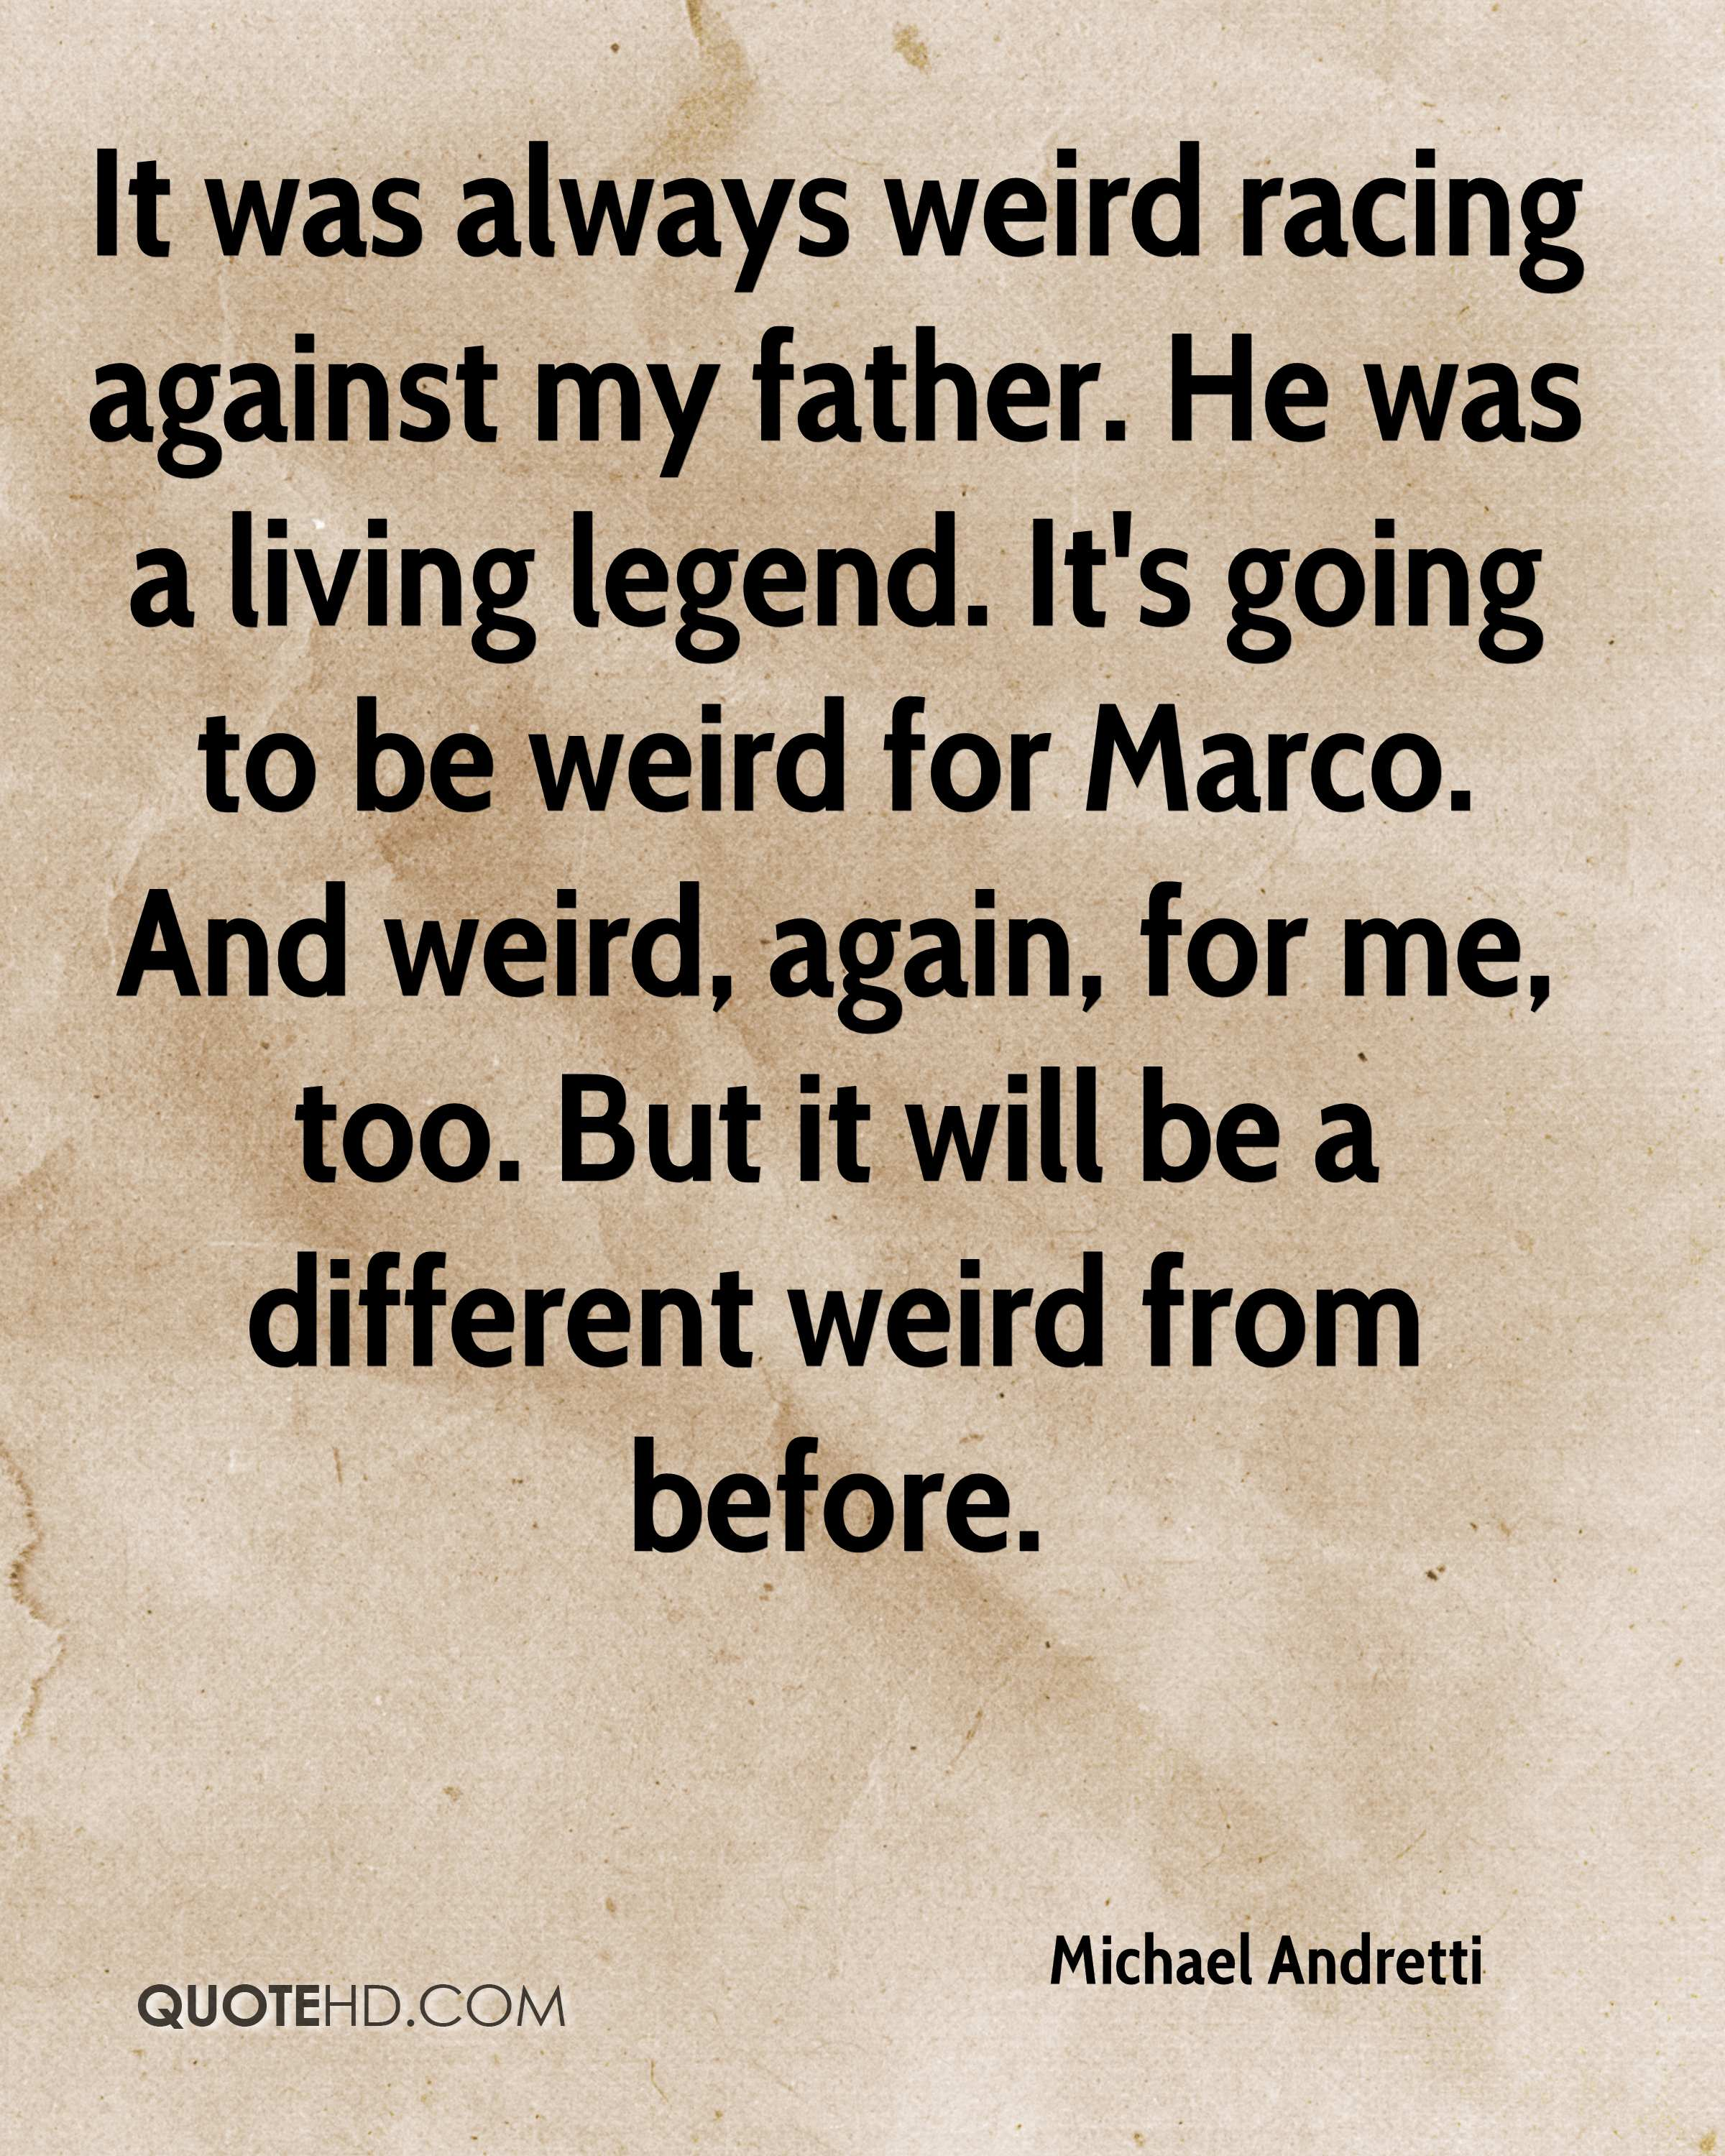 It was always weird racing against my father. He was a living legend. It's going to be weird for Marco. And weird, again, for me, too. But it will be a different weird from before.